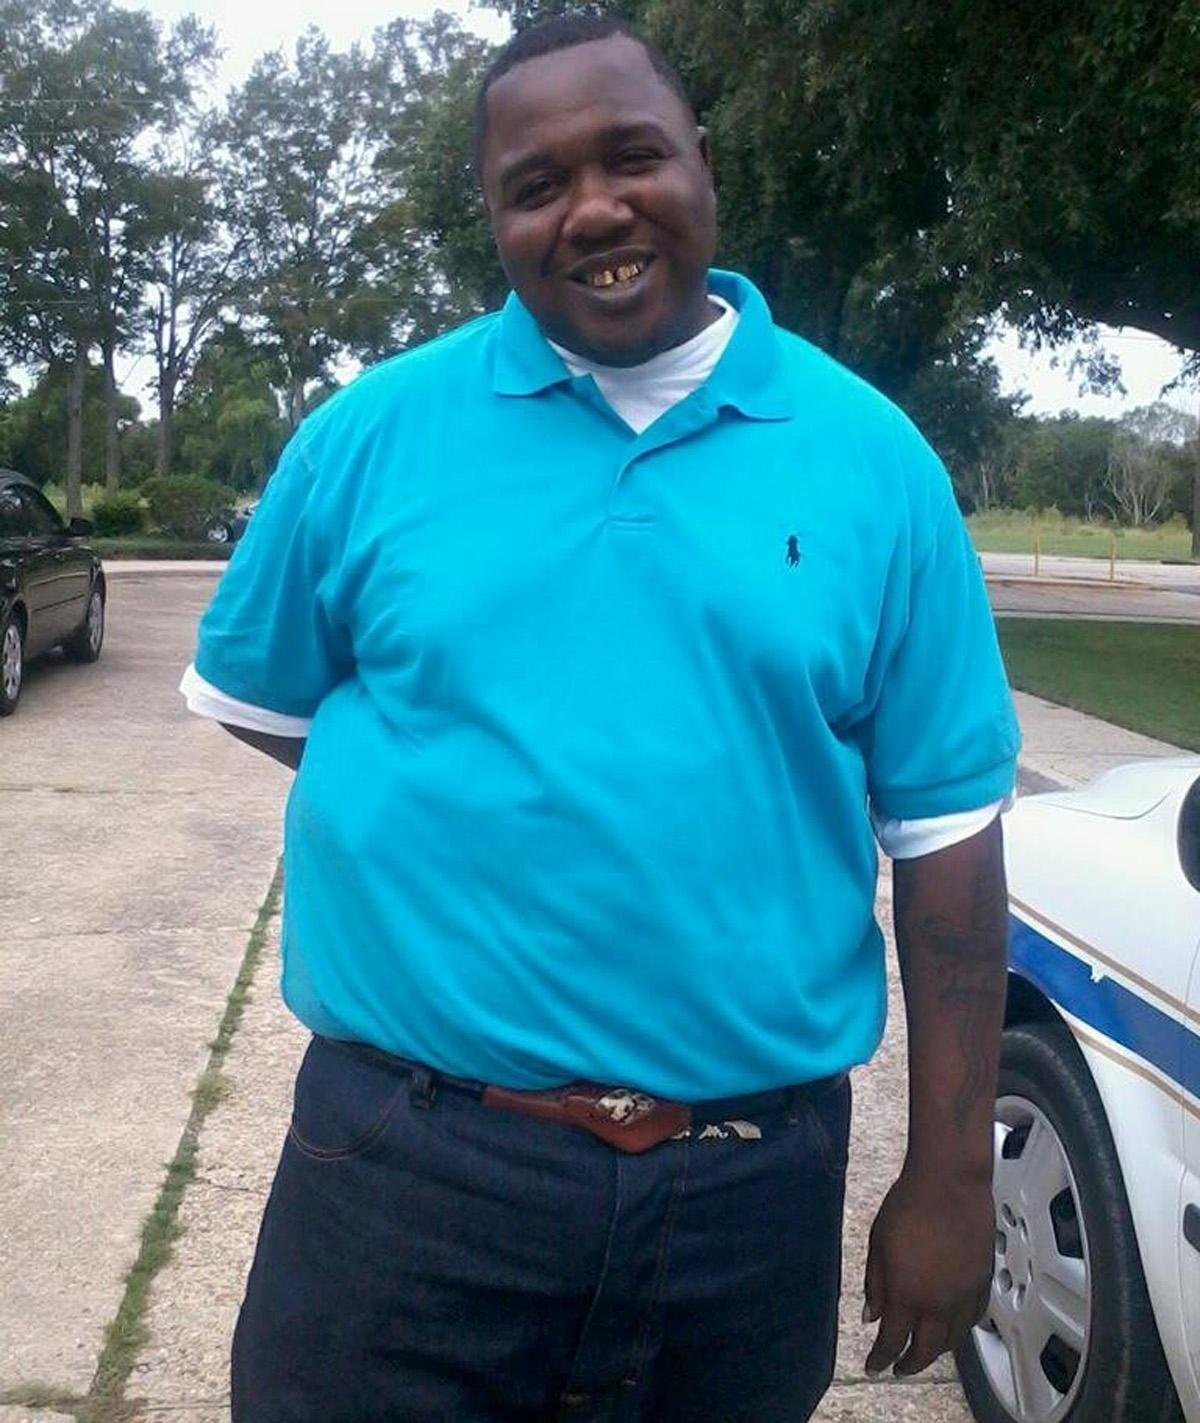 Alton Sterling 37 was killed by police outside the Triple S Food Mart in Baton Rouge Louisiana